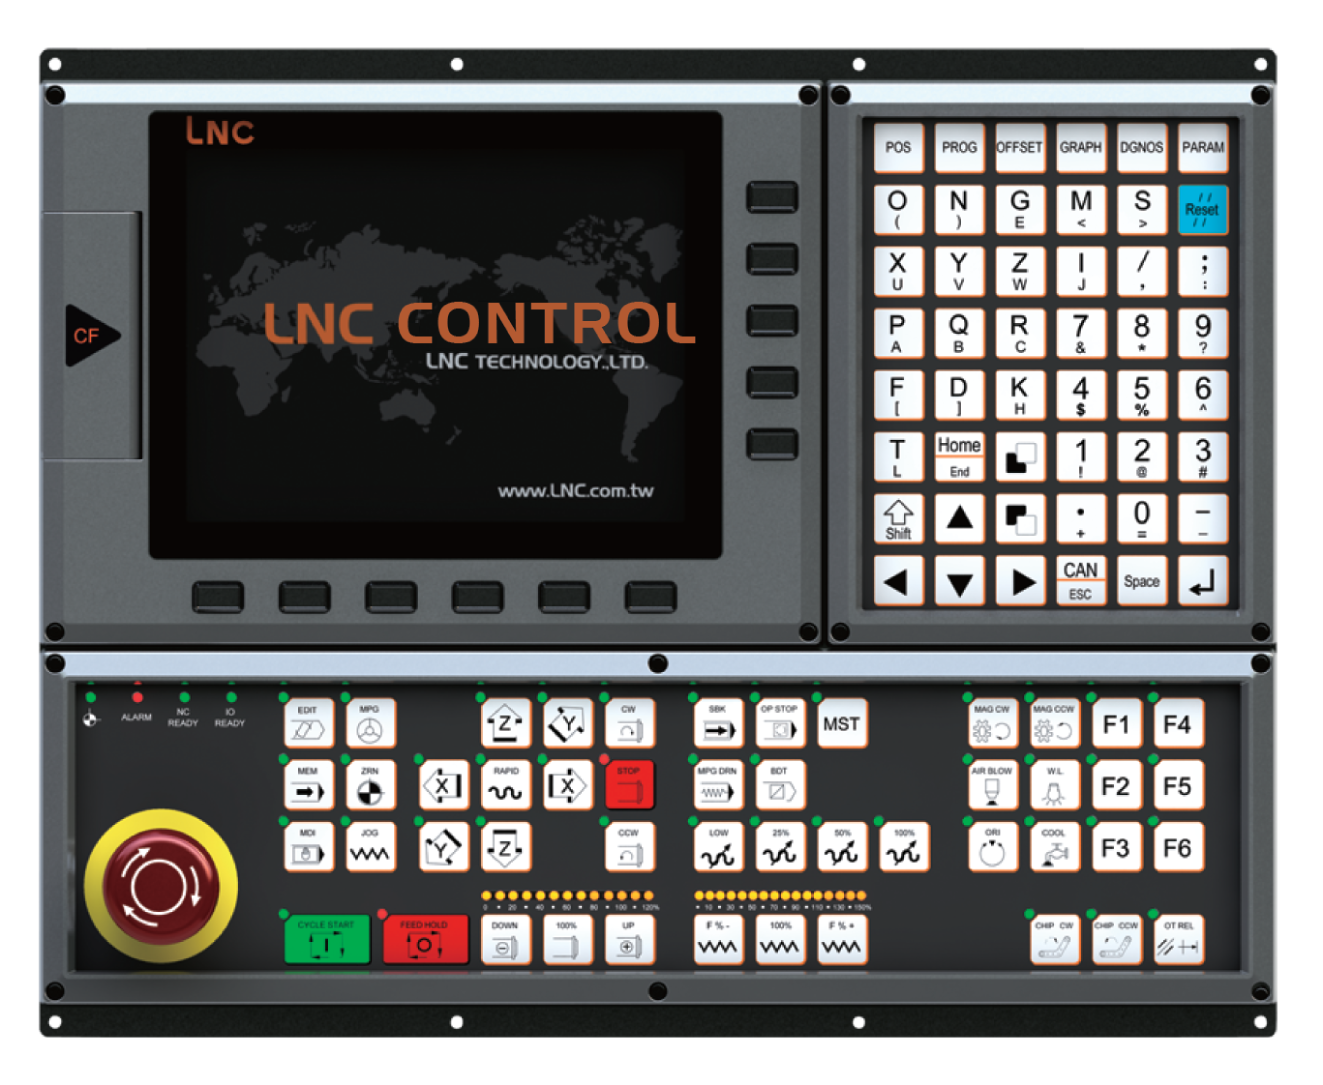 PC-Based CNC Controller